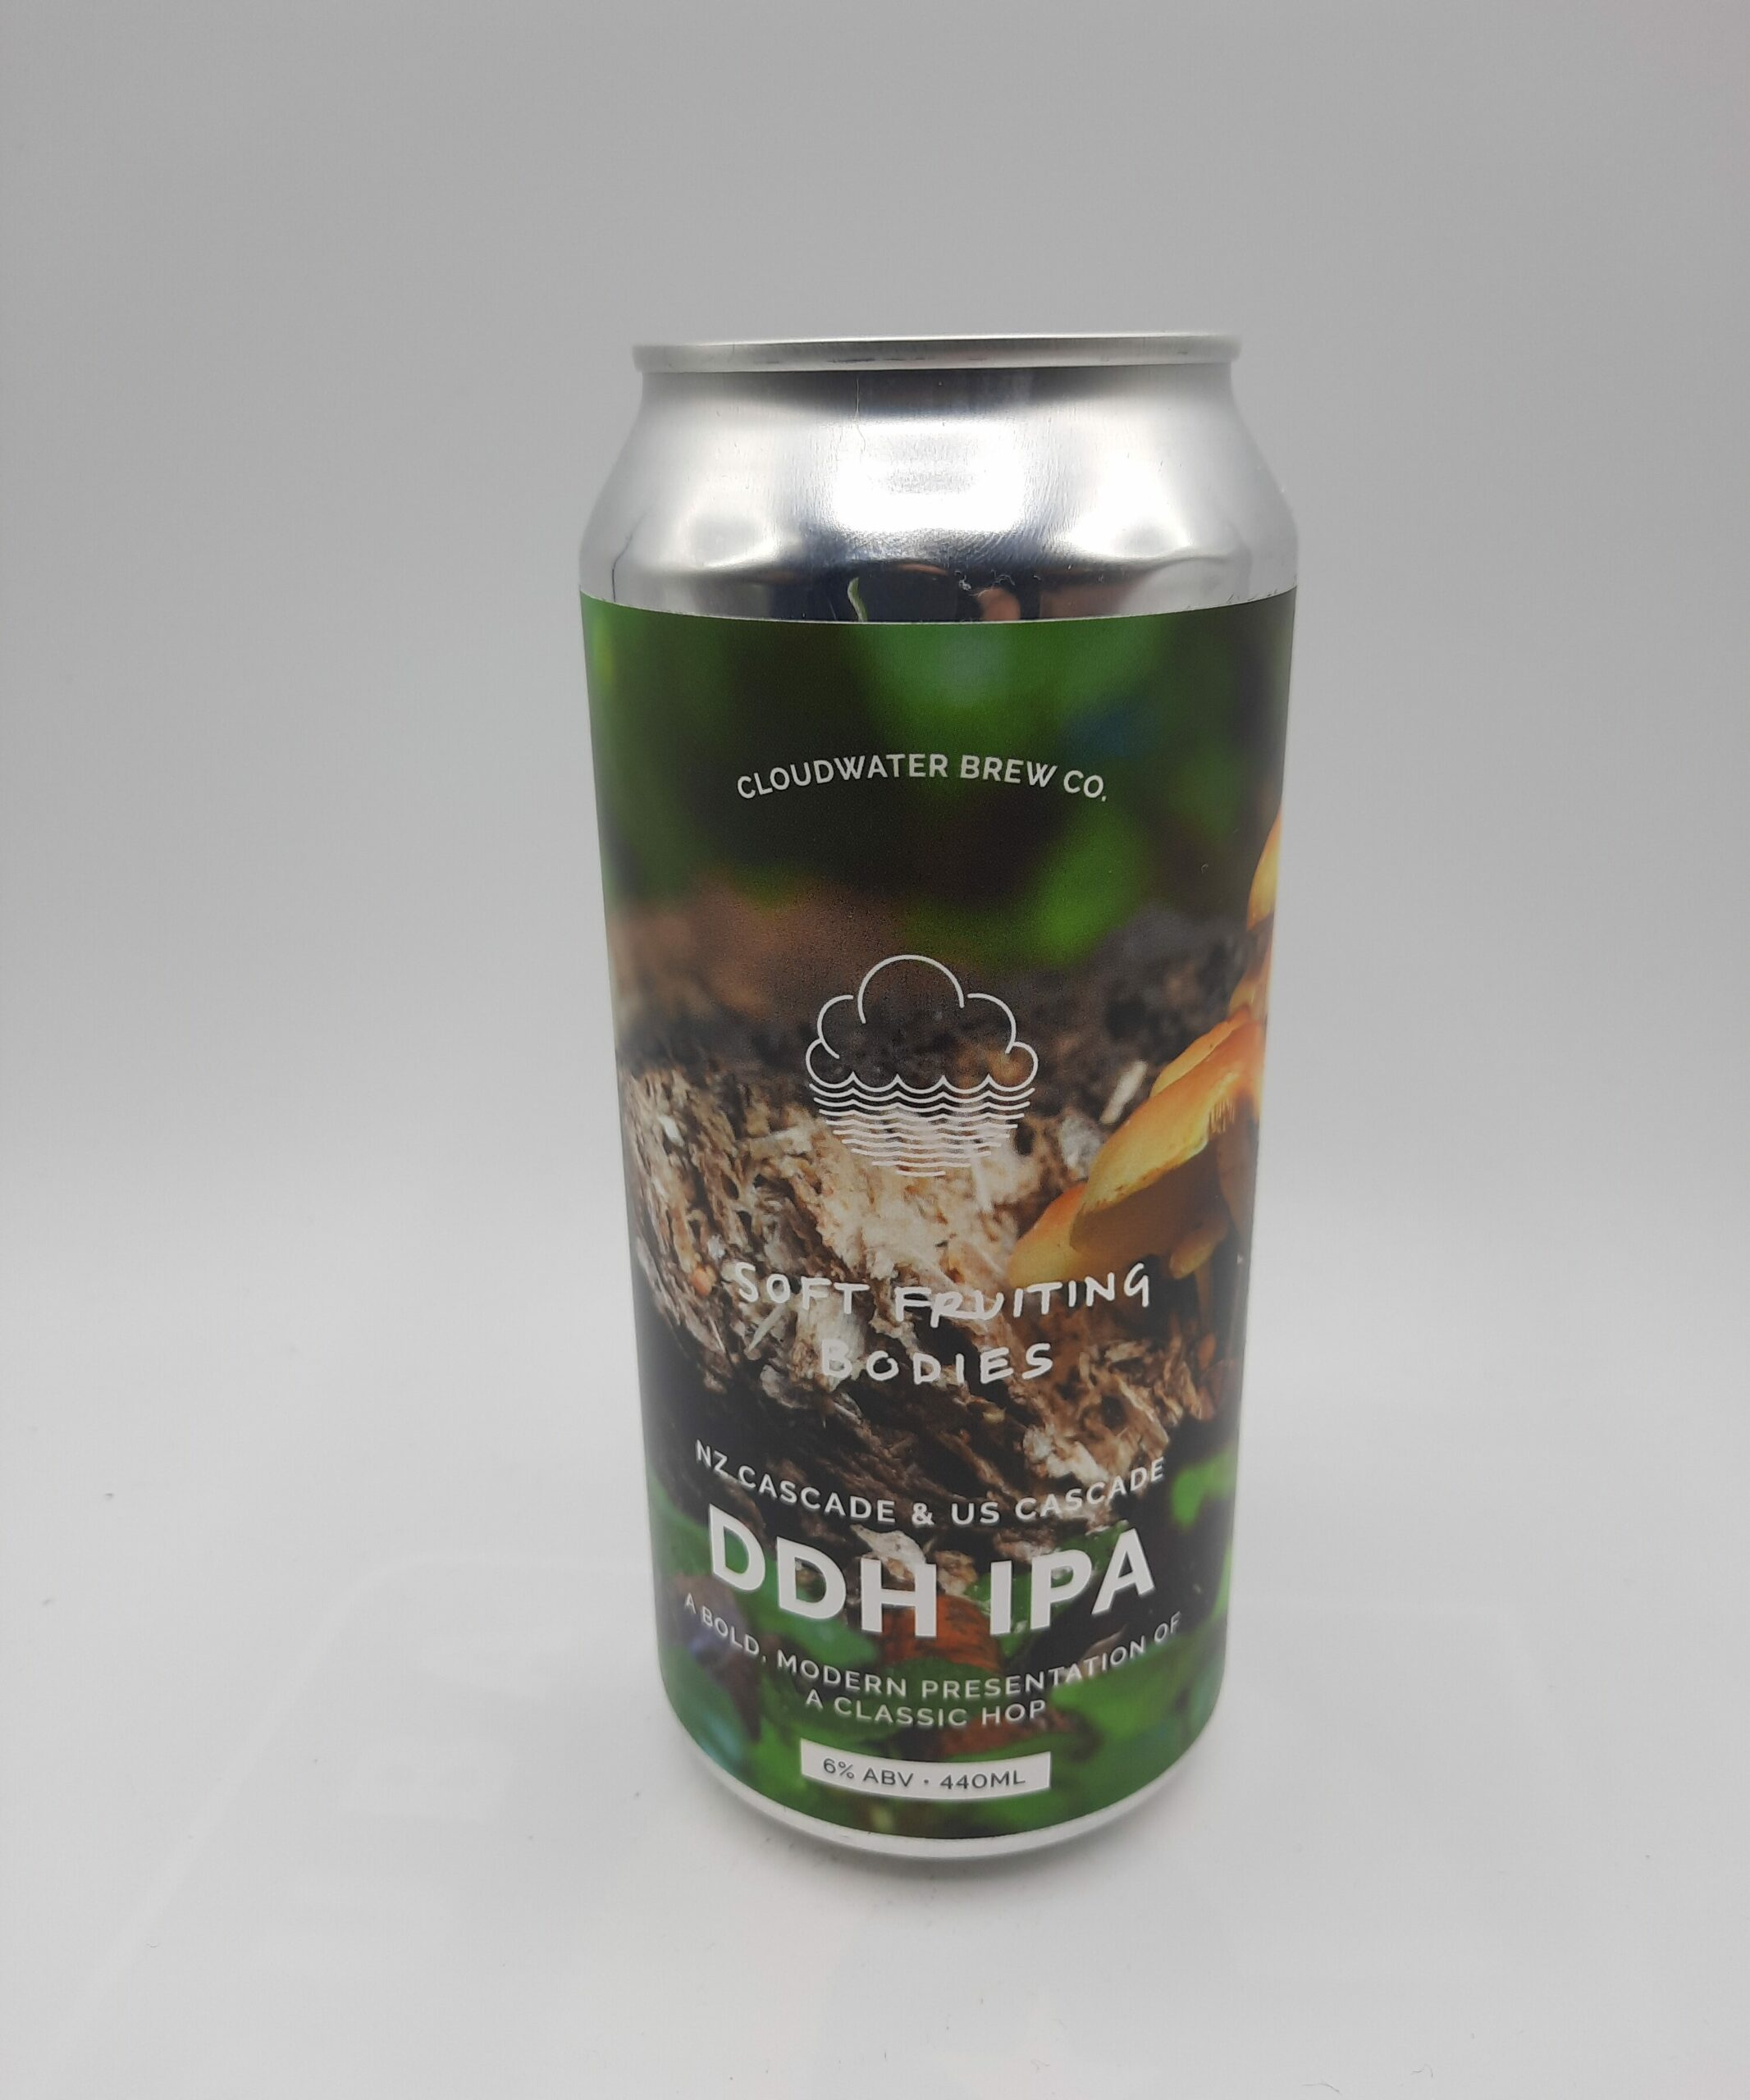 Image Soft fruiting bodies DDH IPA